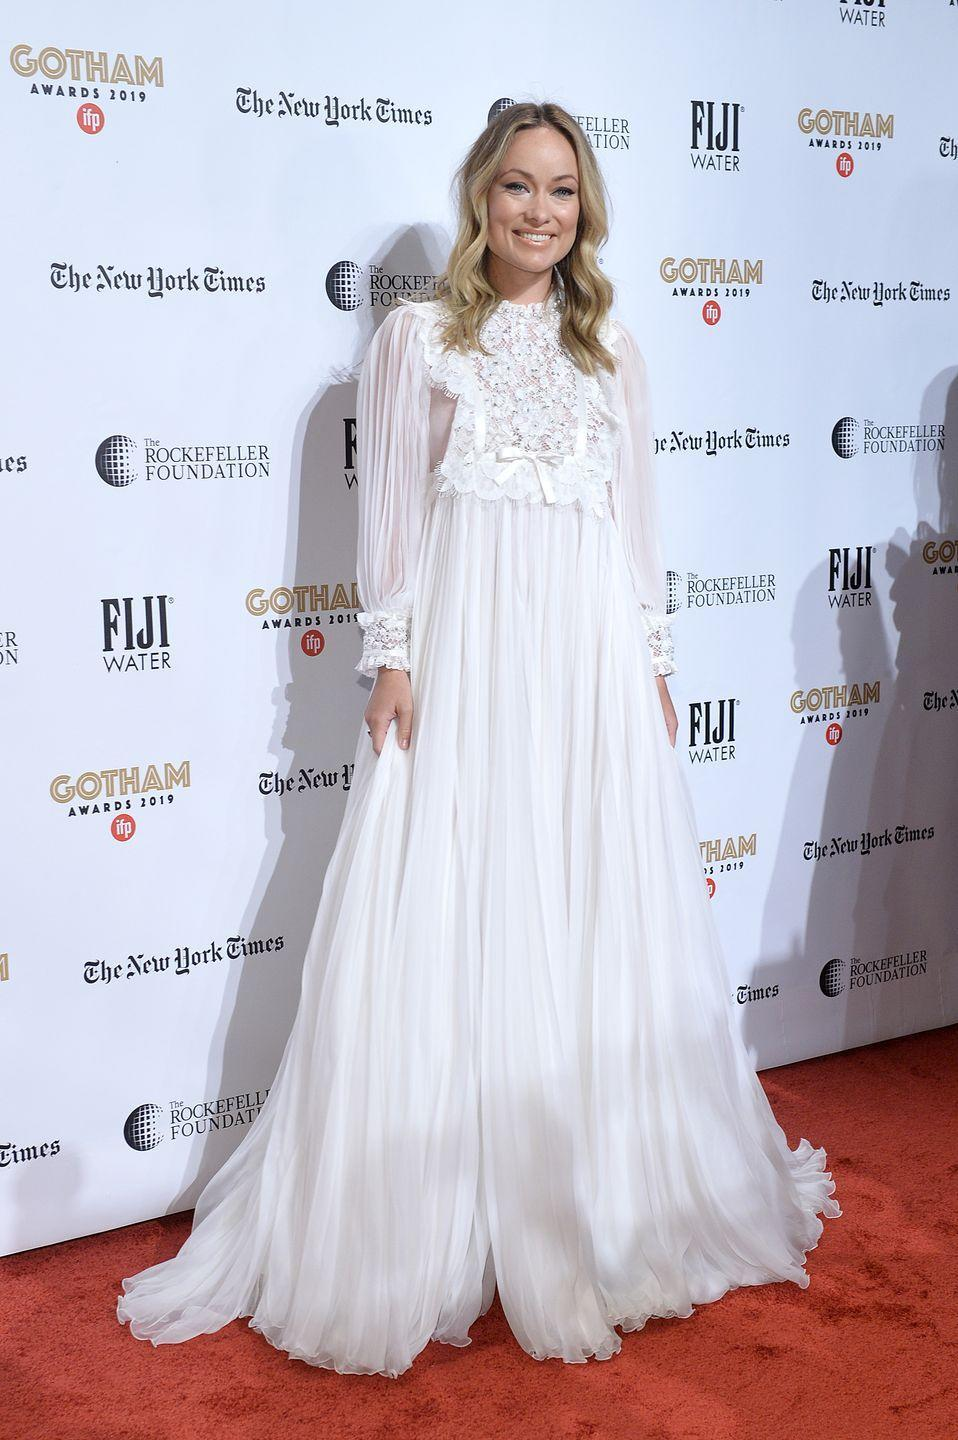 <p>Wilde, who was nominated for the Bingham Ray Breakthrough Director Award at the awards show, wore an ethereal white gown with boho sleeves.<br></p>